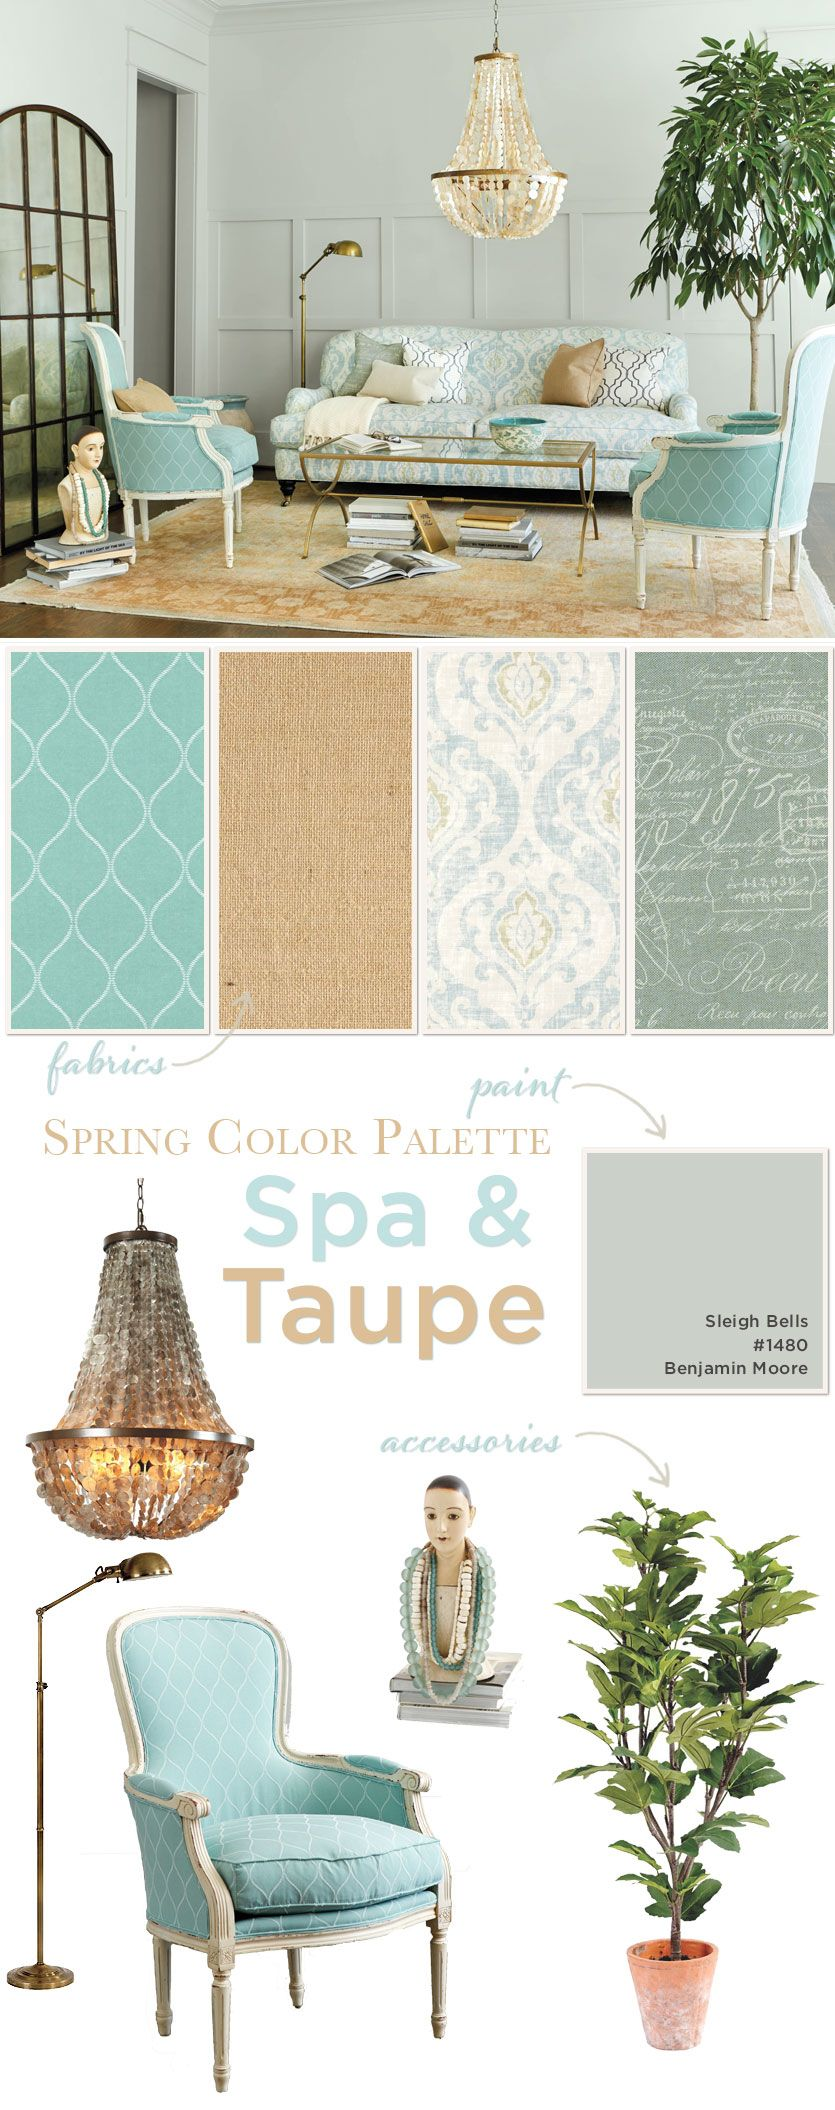 living room in spa taupe color palette - Home Decor Color Palettes